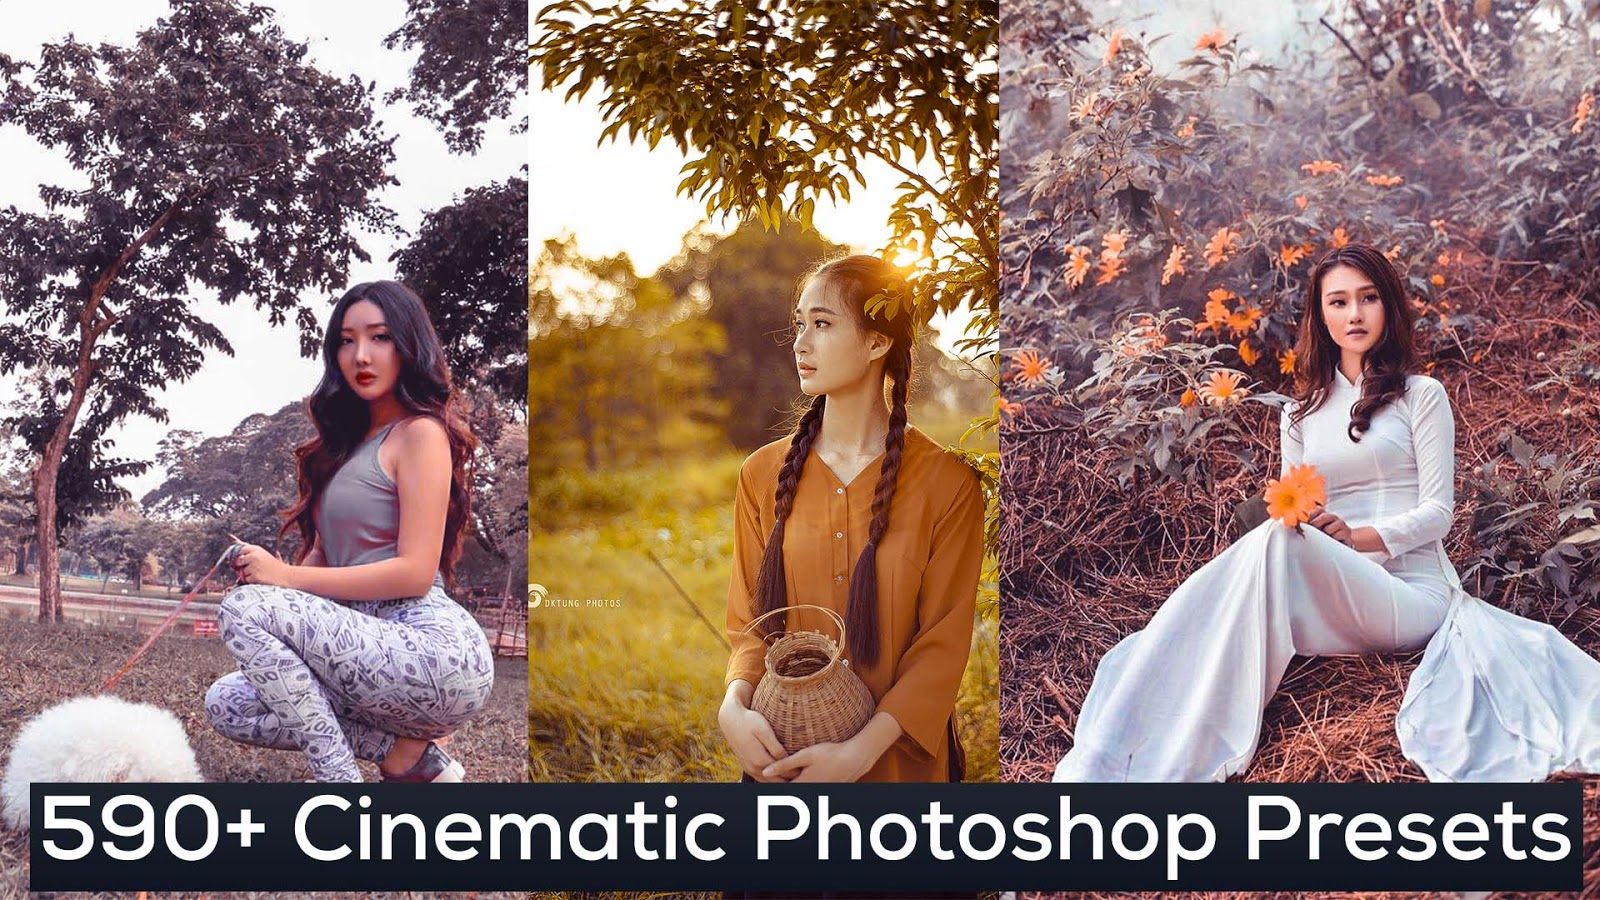 Free Photoshop Presets - 590+ Free Cinematic Photoshop Presets to Enhance Your Photography